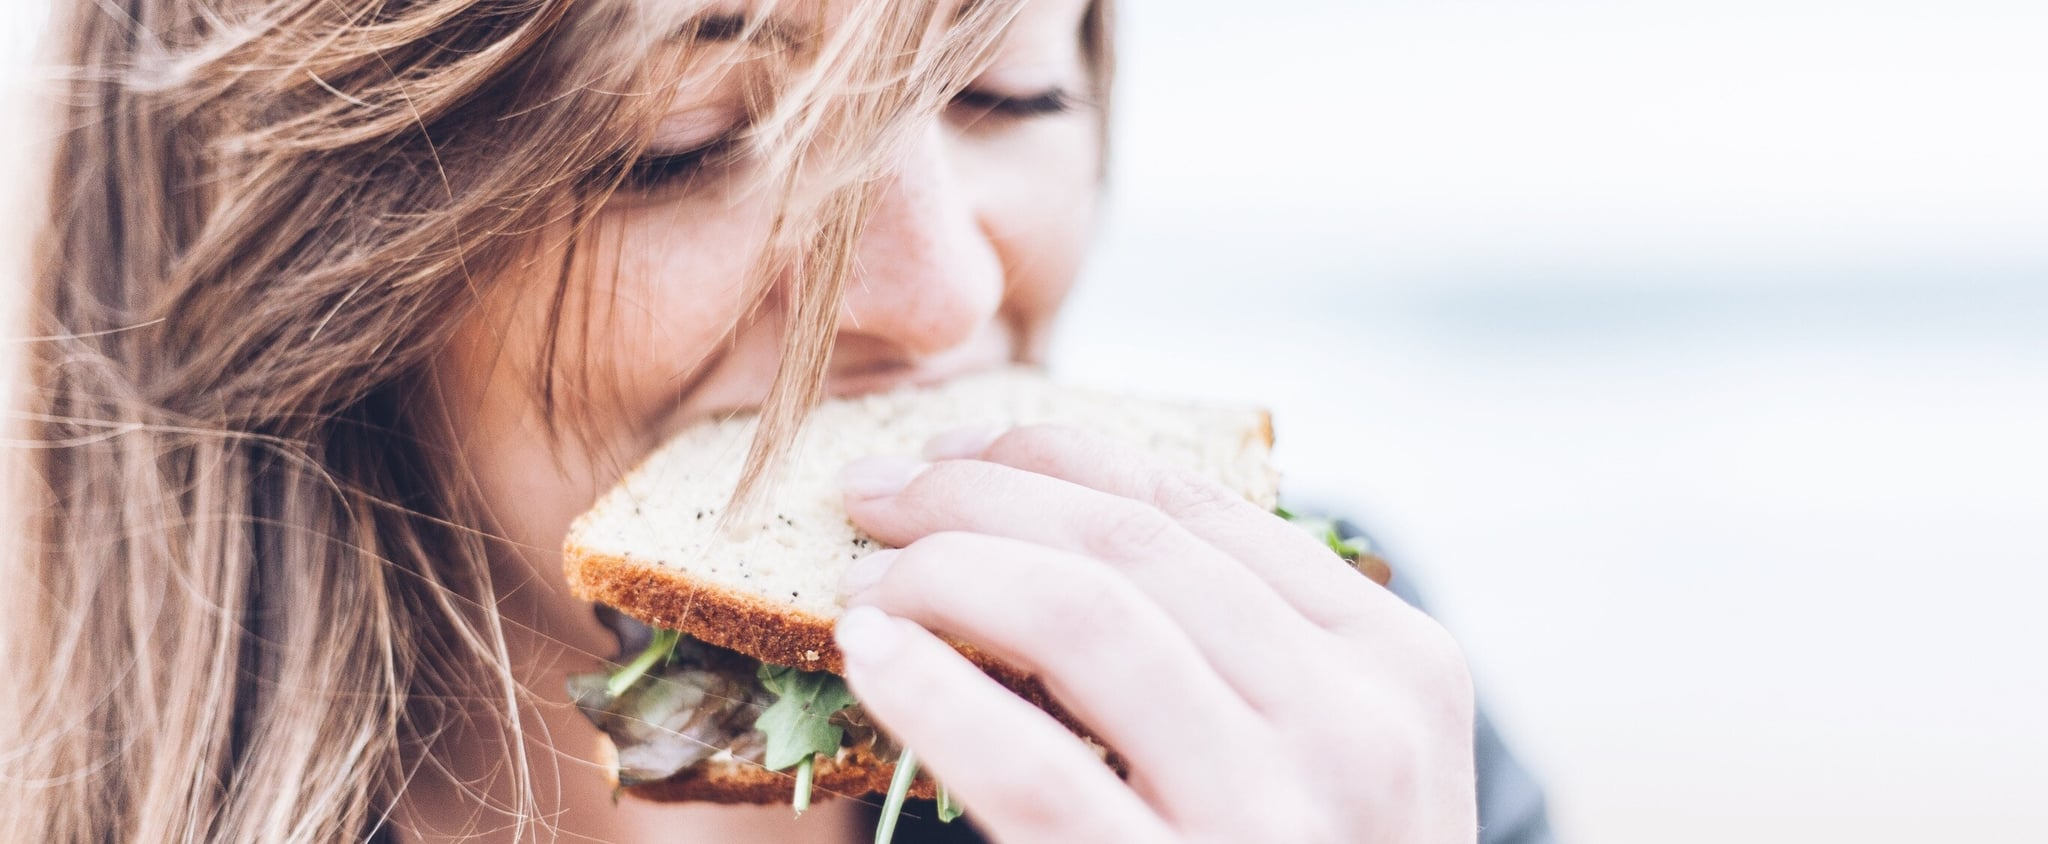 How Mindful Eating Can Help With Weight Loss